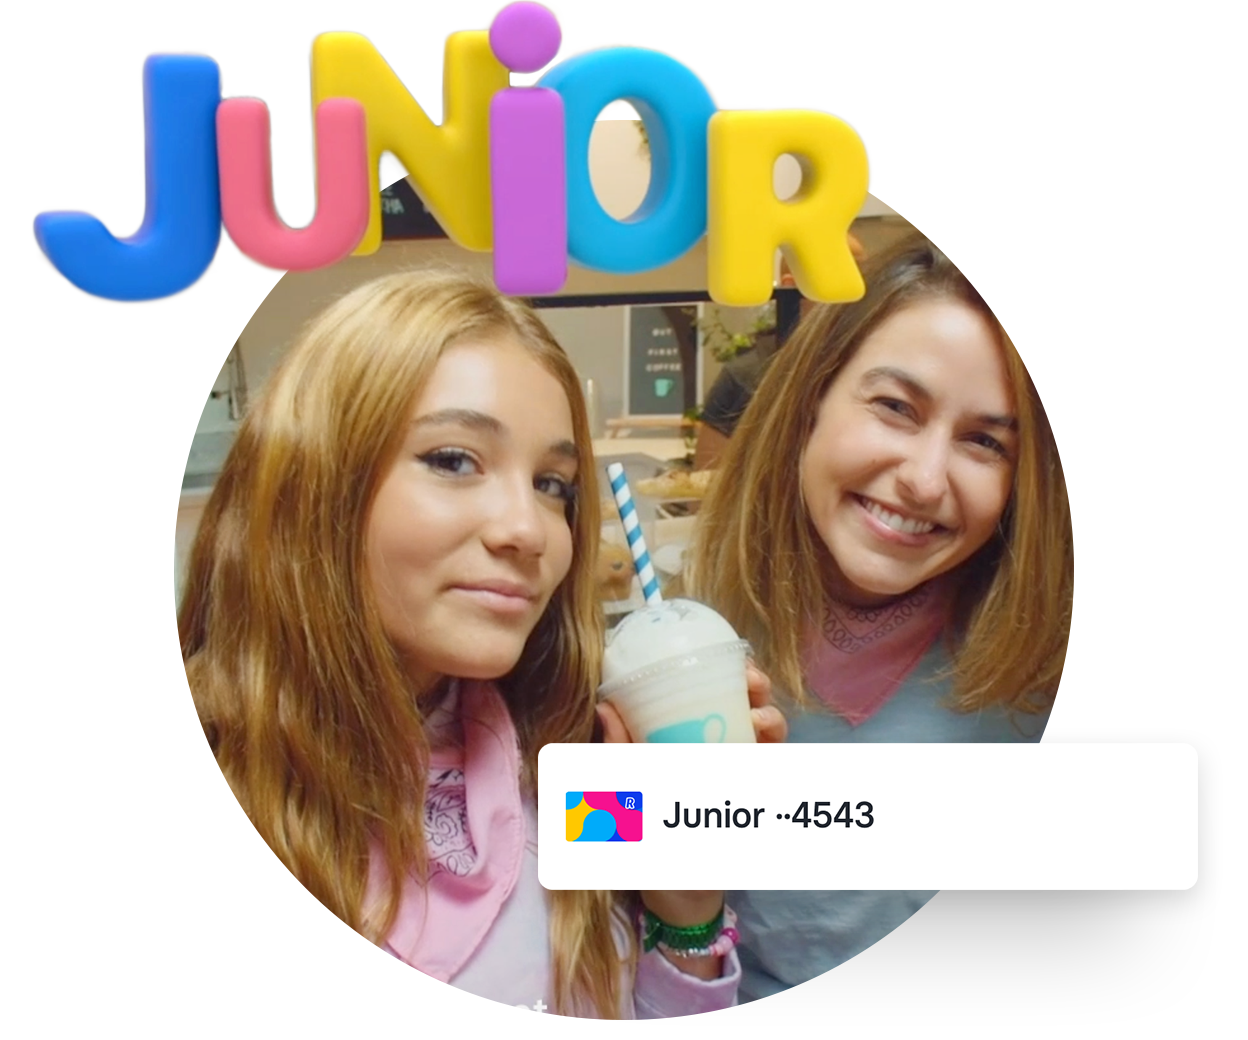 Next generation finance, with Revolut Junior